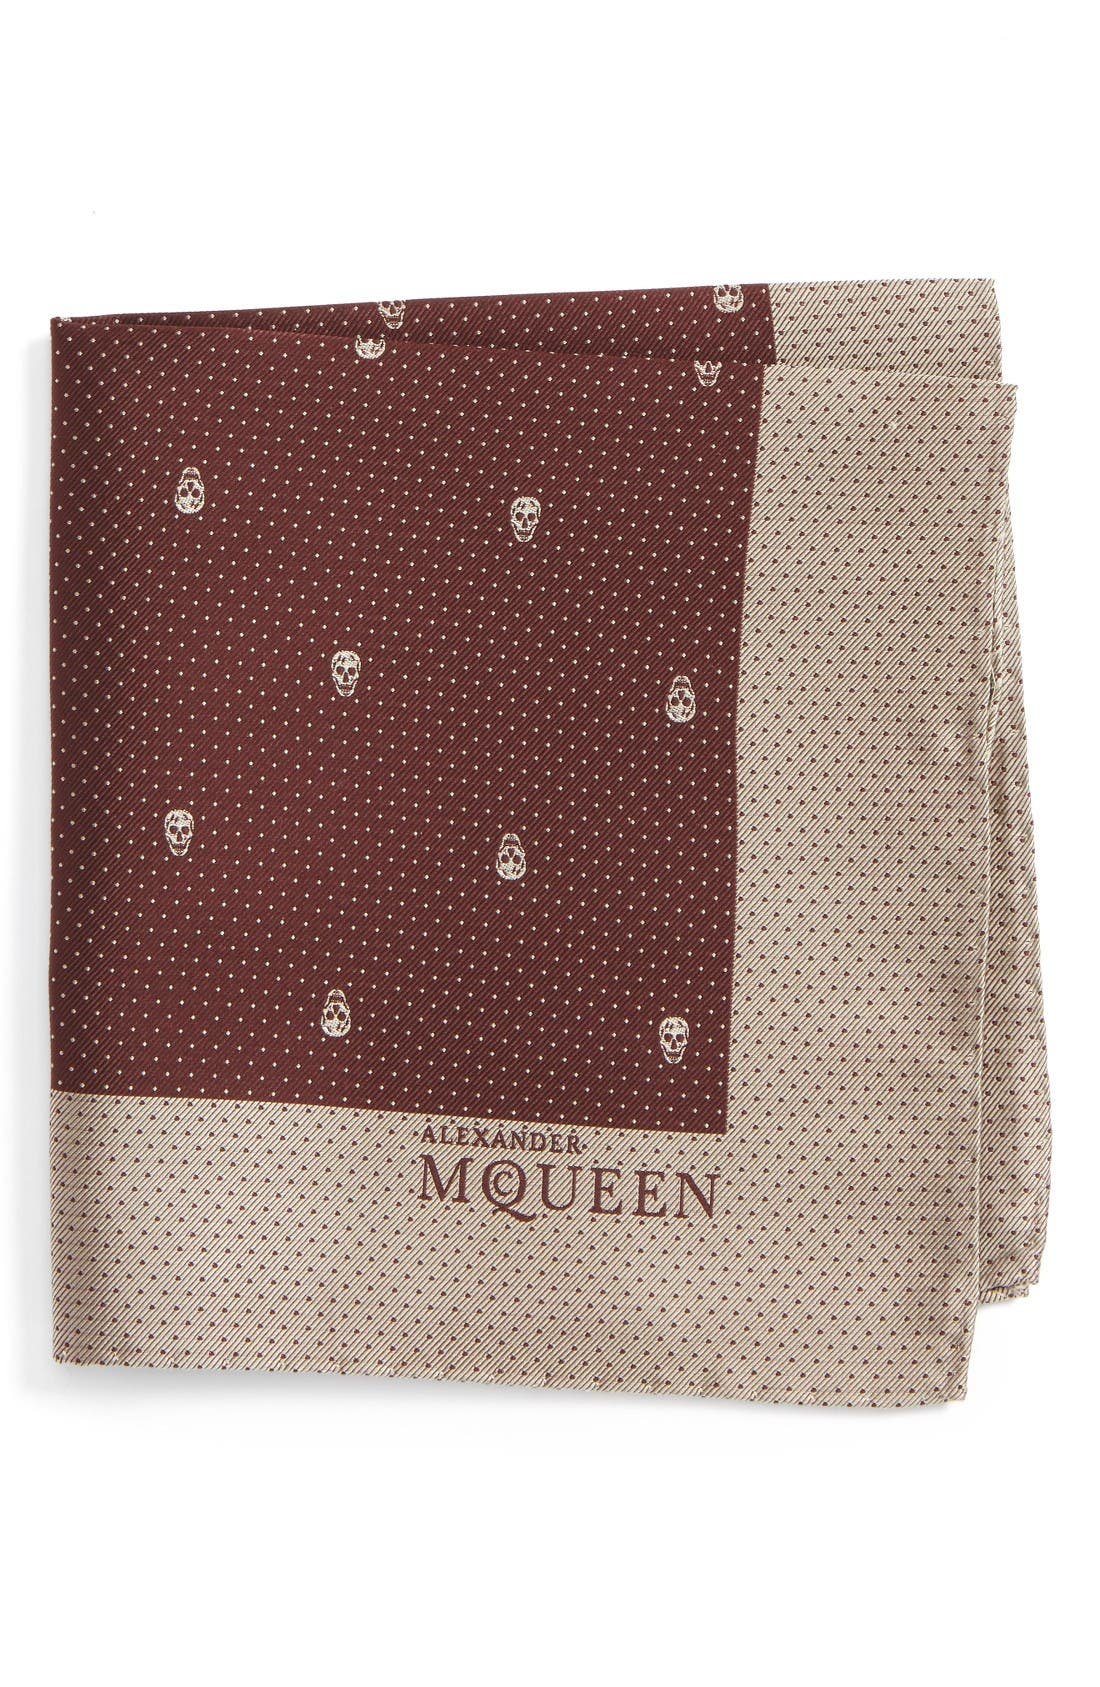 Alexander McQueen Skull Dot Silk Pocket Square